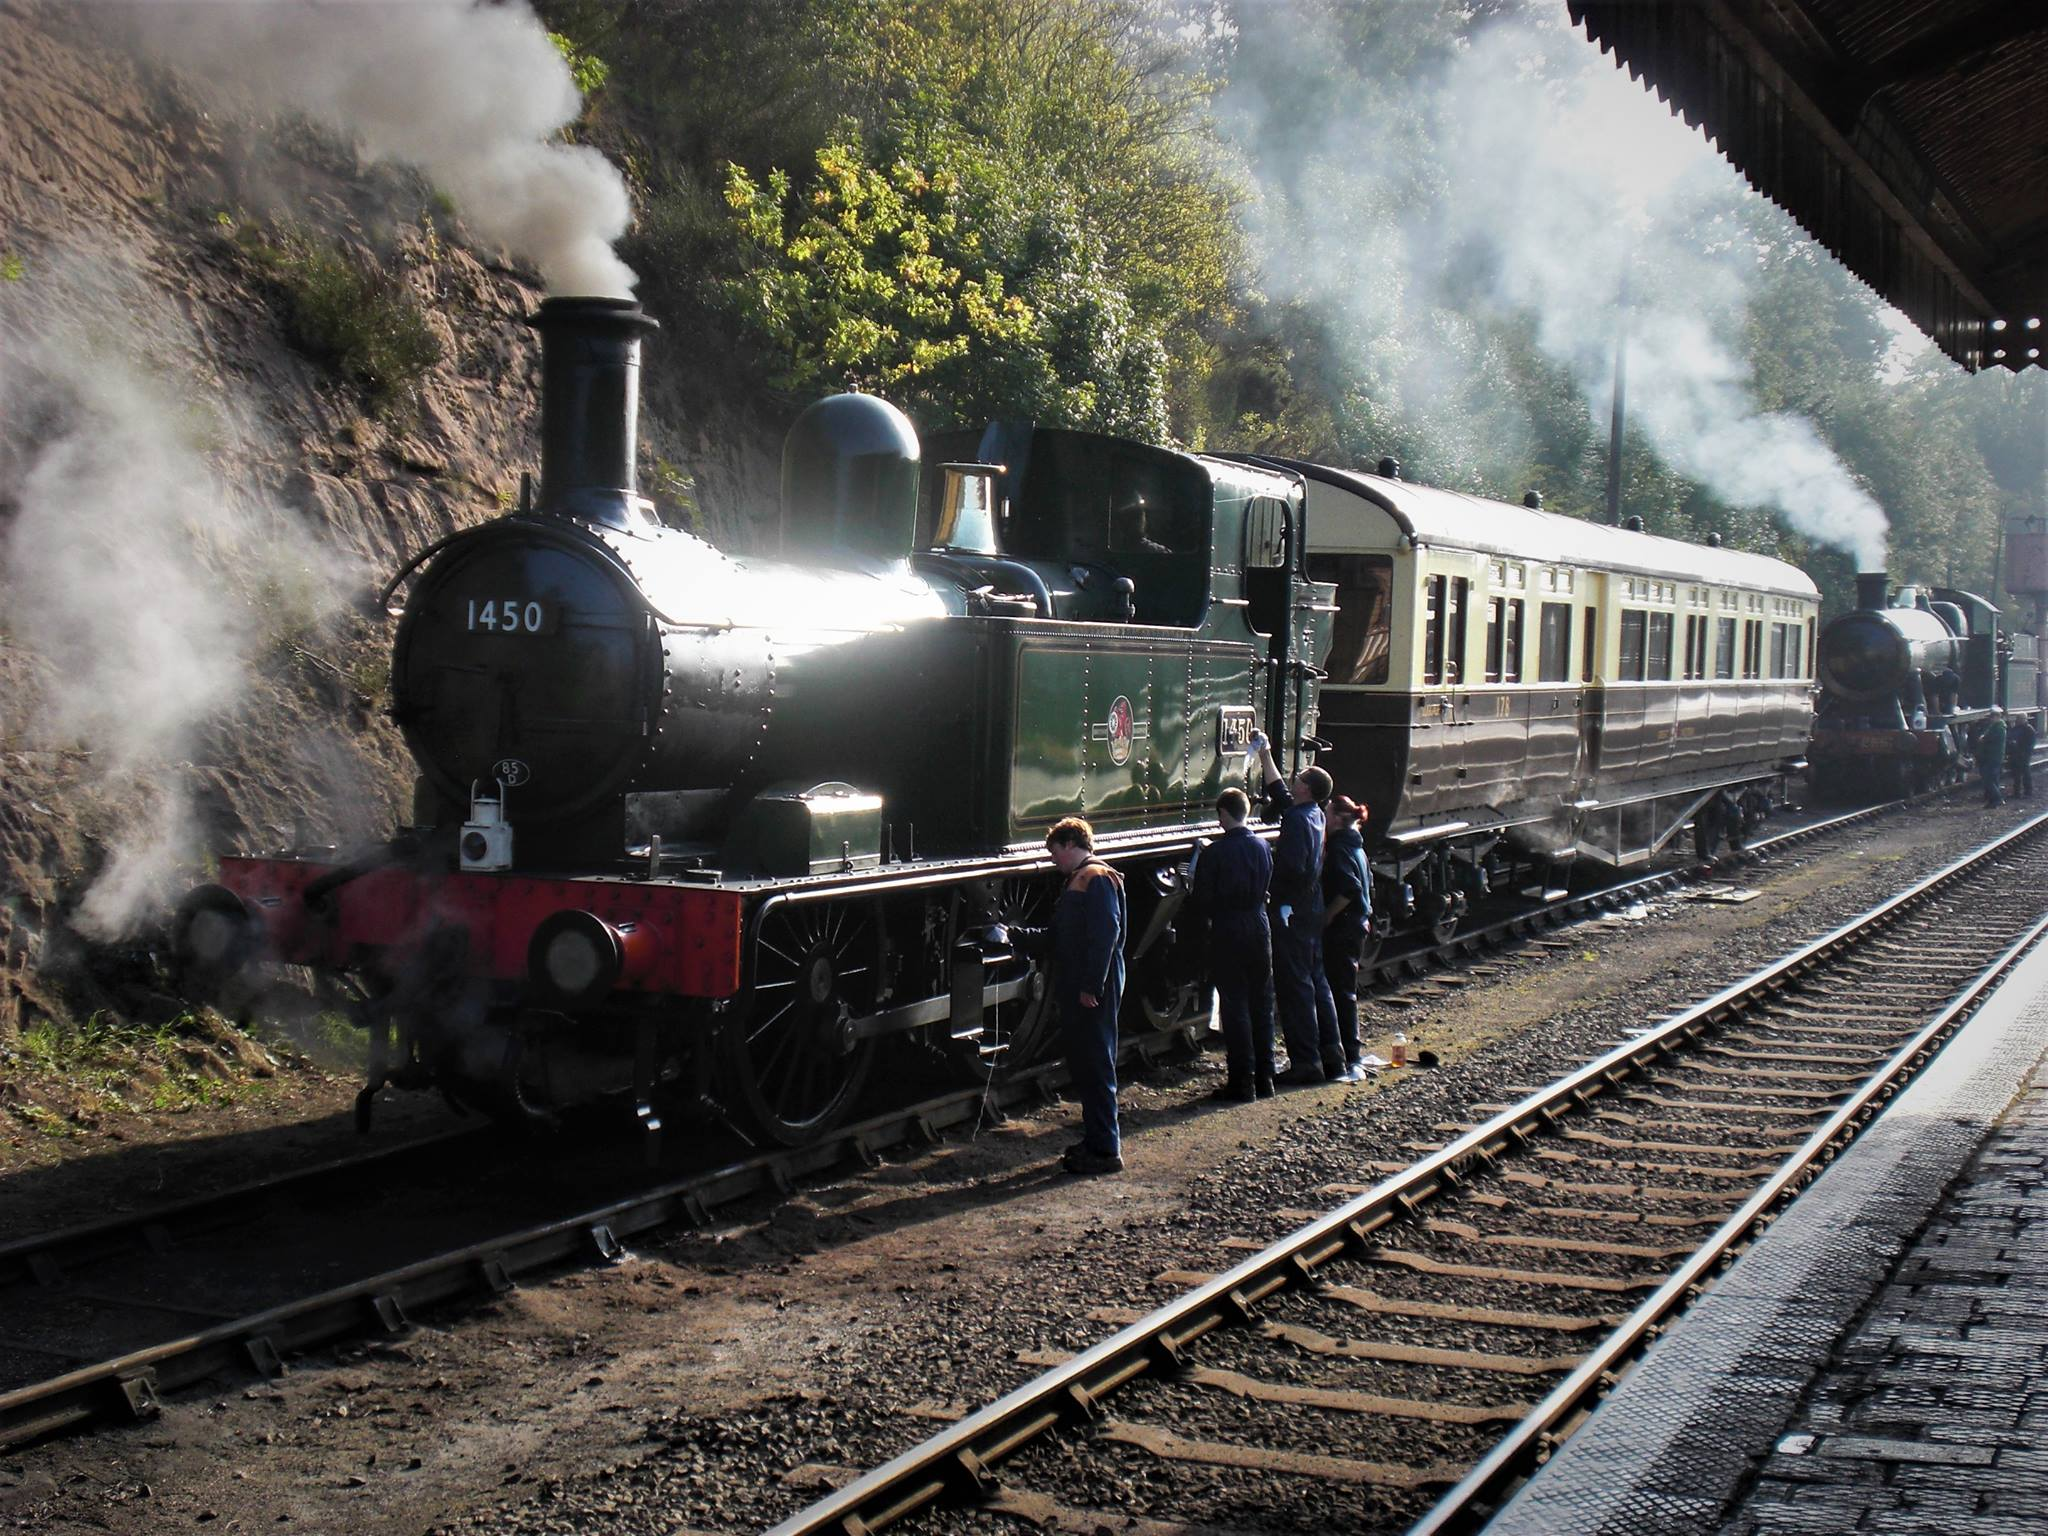 1450 on the Severn Valley Railway